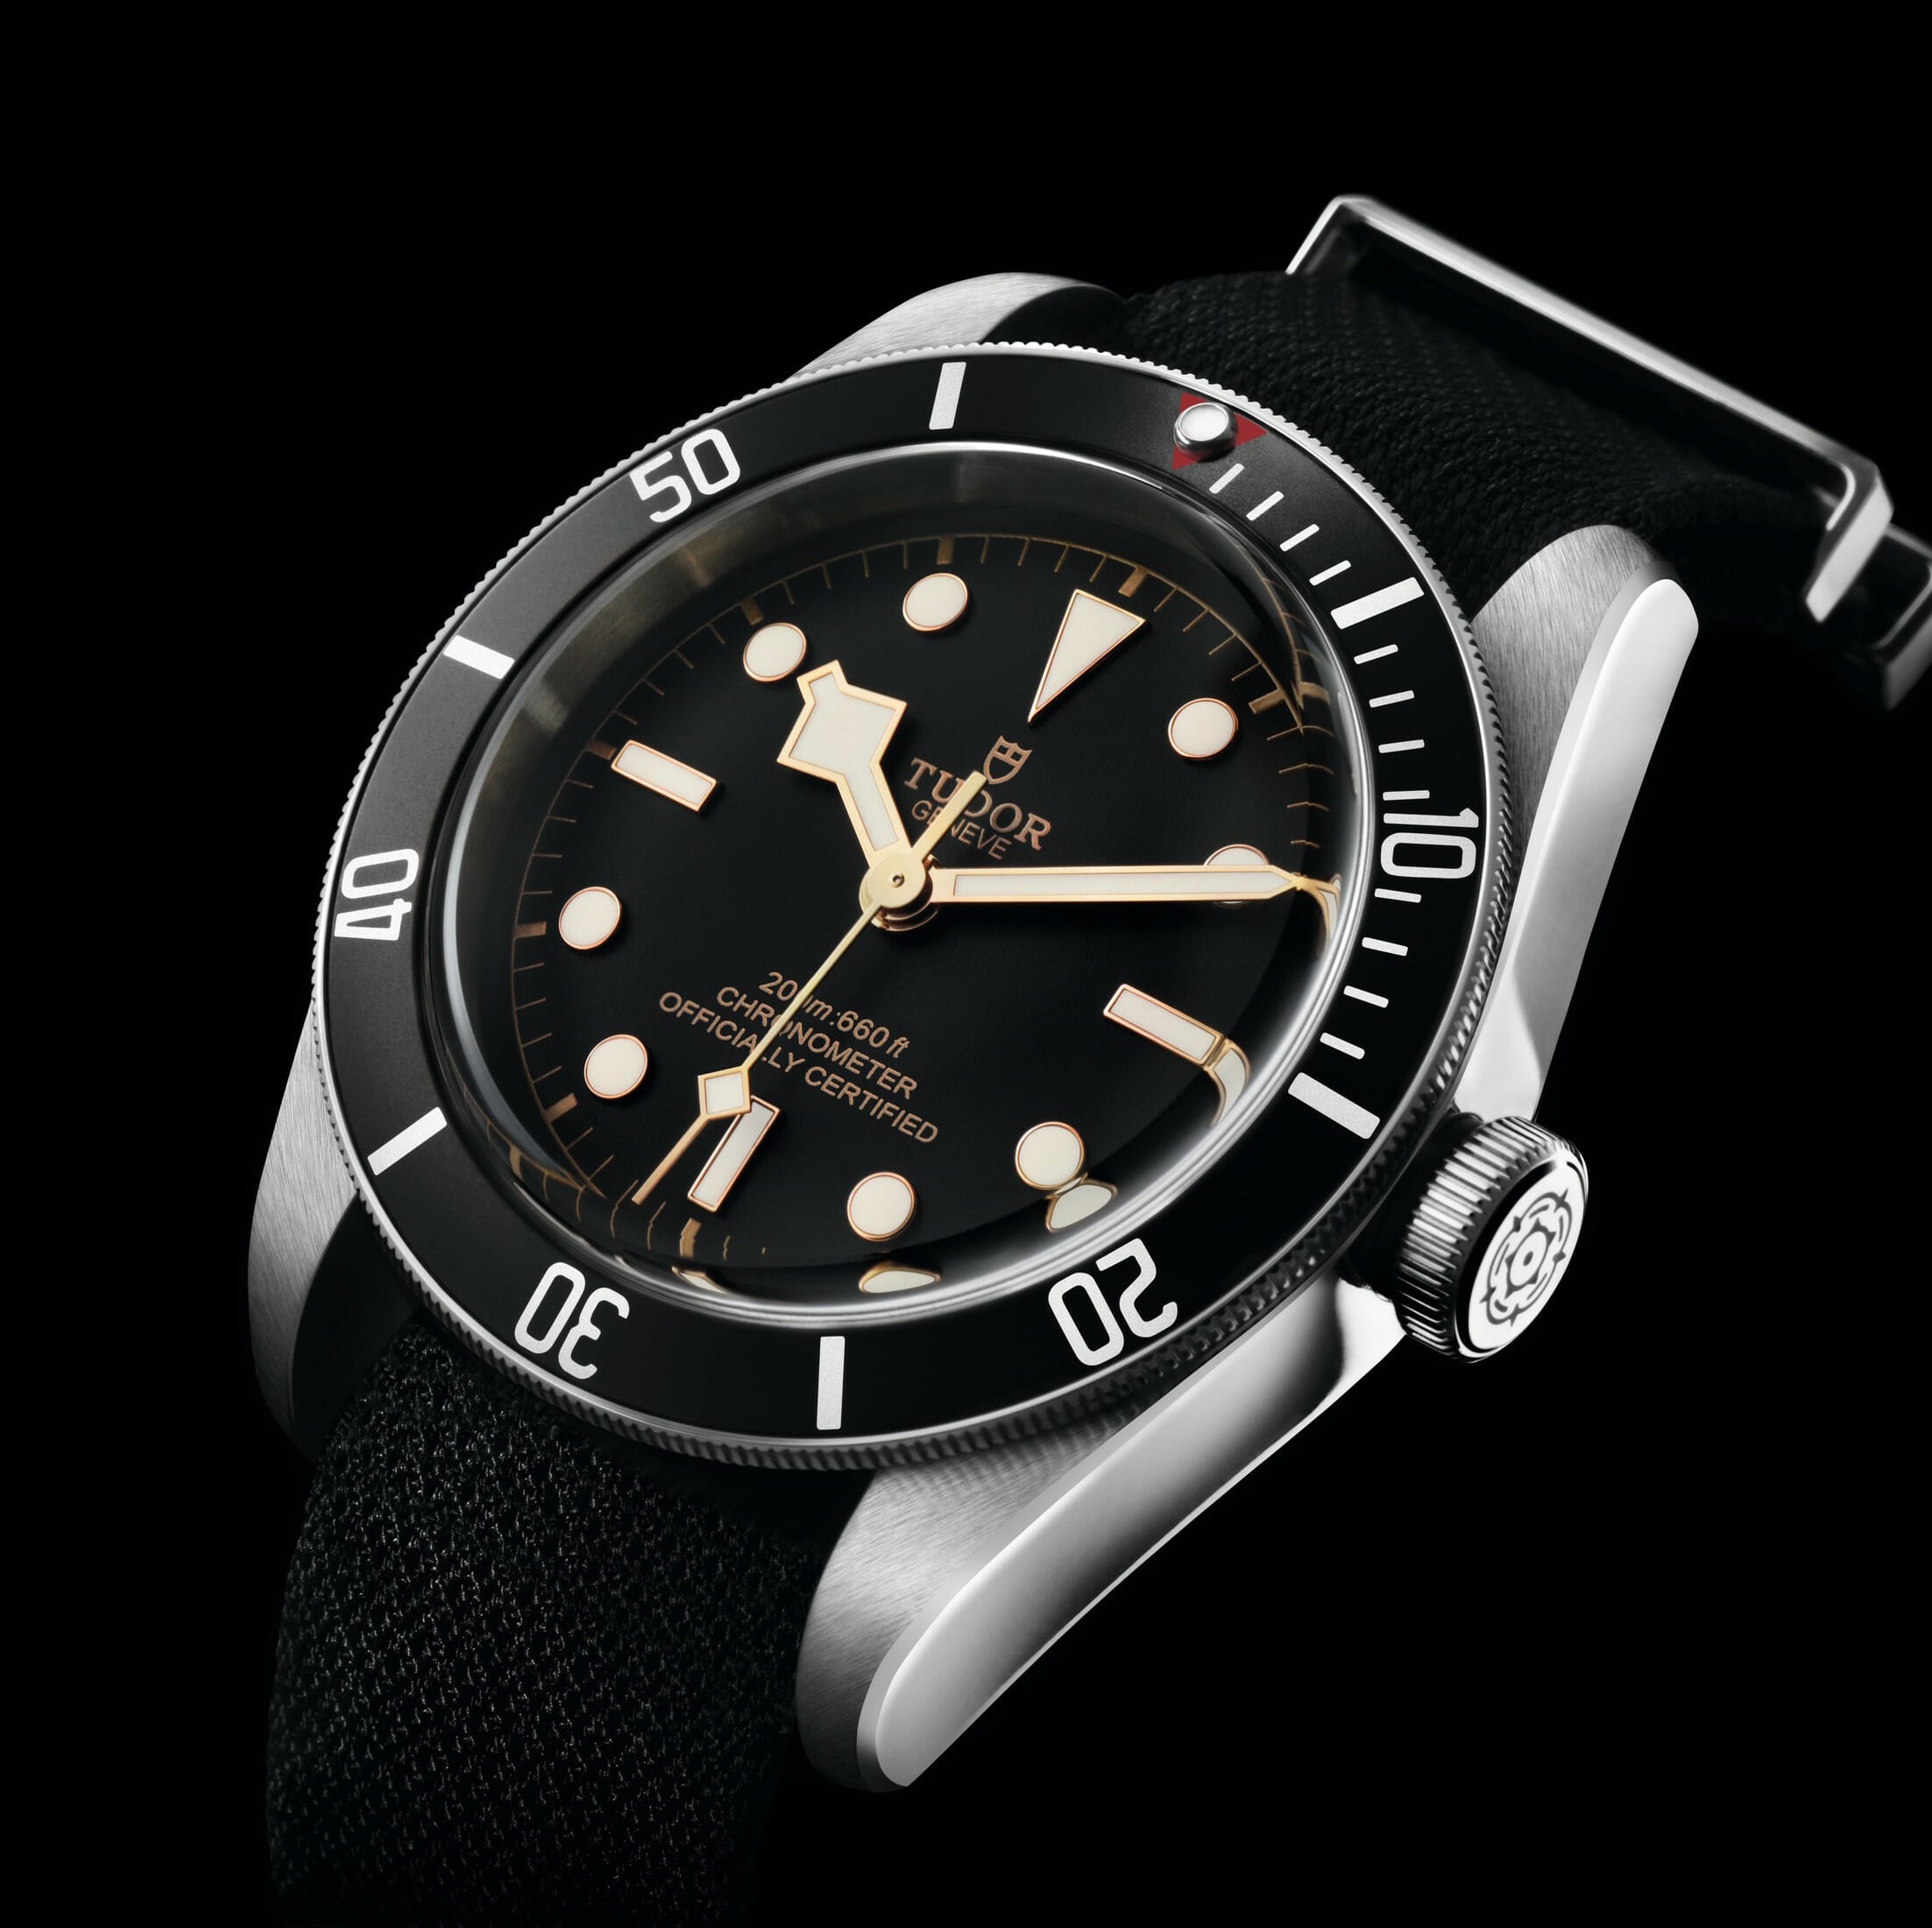 2016 Tudor Black Bay 79230N